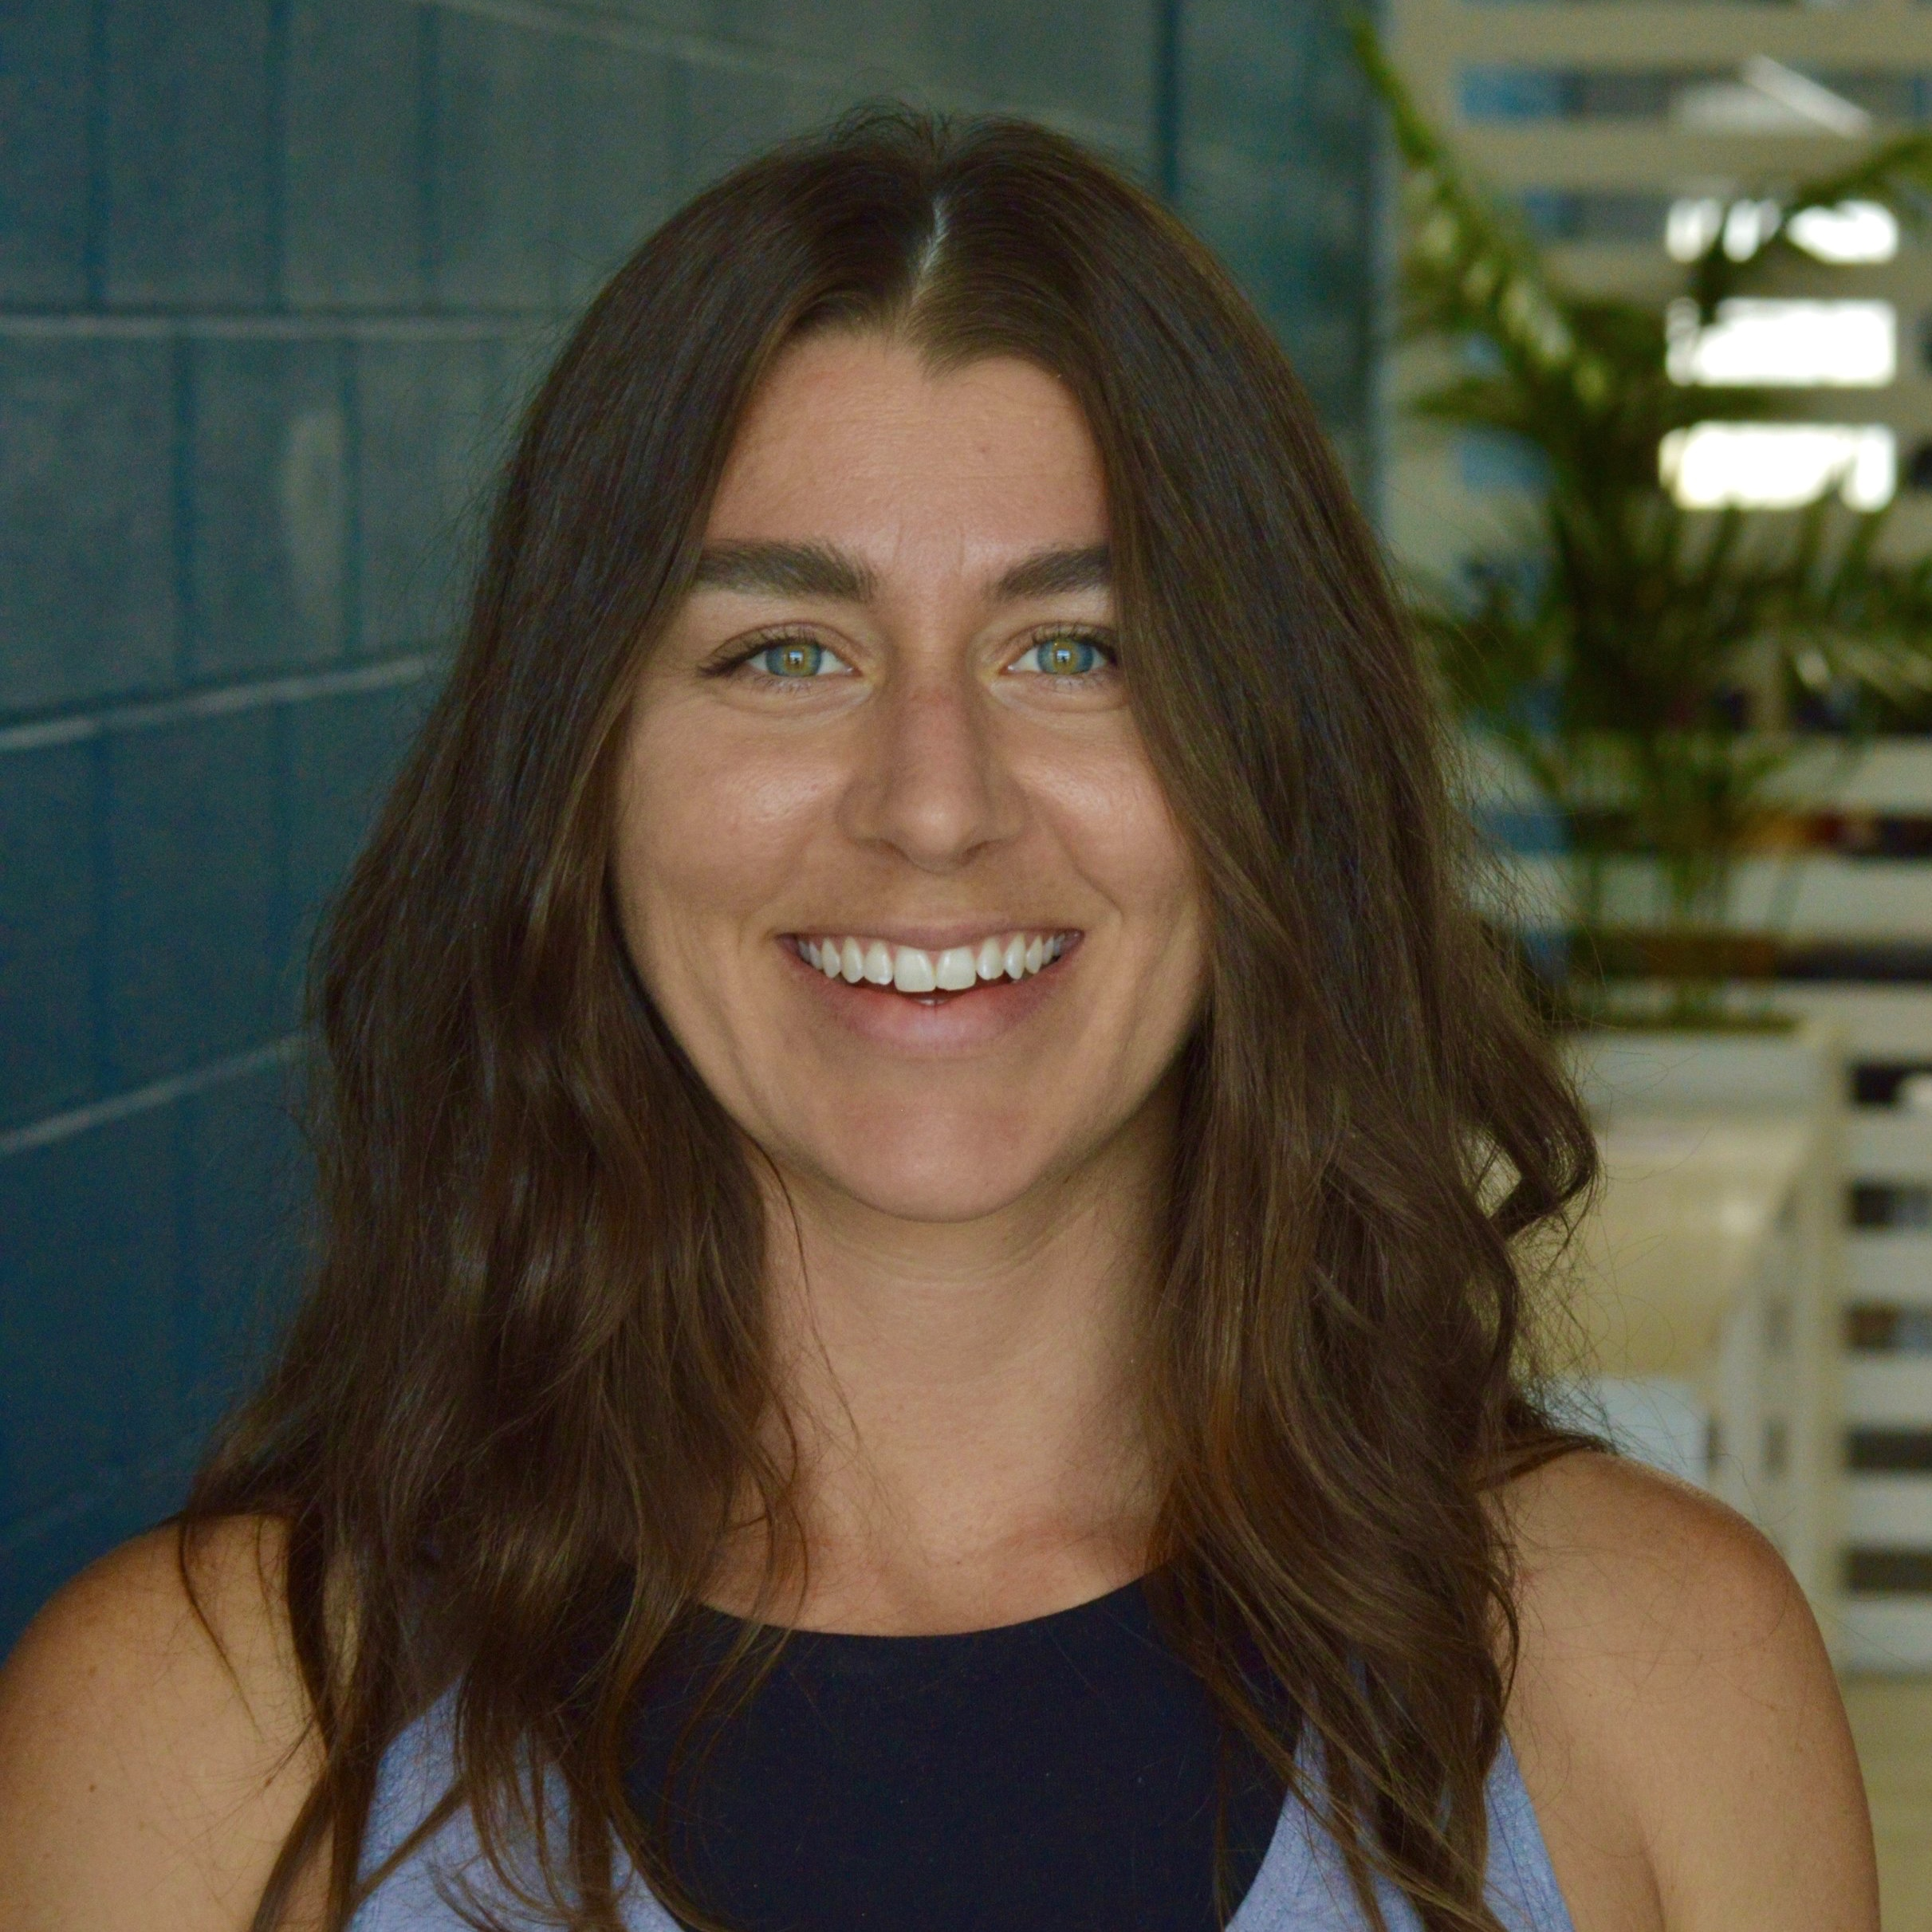 Elle Bandy  NASM-CPT  Meeting challenges has been something Elle has done her entire life, but after an automobile accident that almost claimed her ability to walk, she made surpassing challenges a major part of her daily regimen. Elle is a competitive powerlifter and proof that anything is possible when you stop listening to others, and start cultivating your inner voice. Elle is the perfect trainer for anyone looking to focus on the finer details of strength and conditioning.